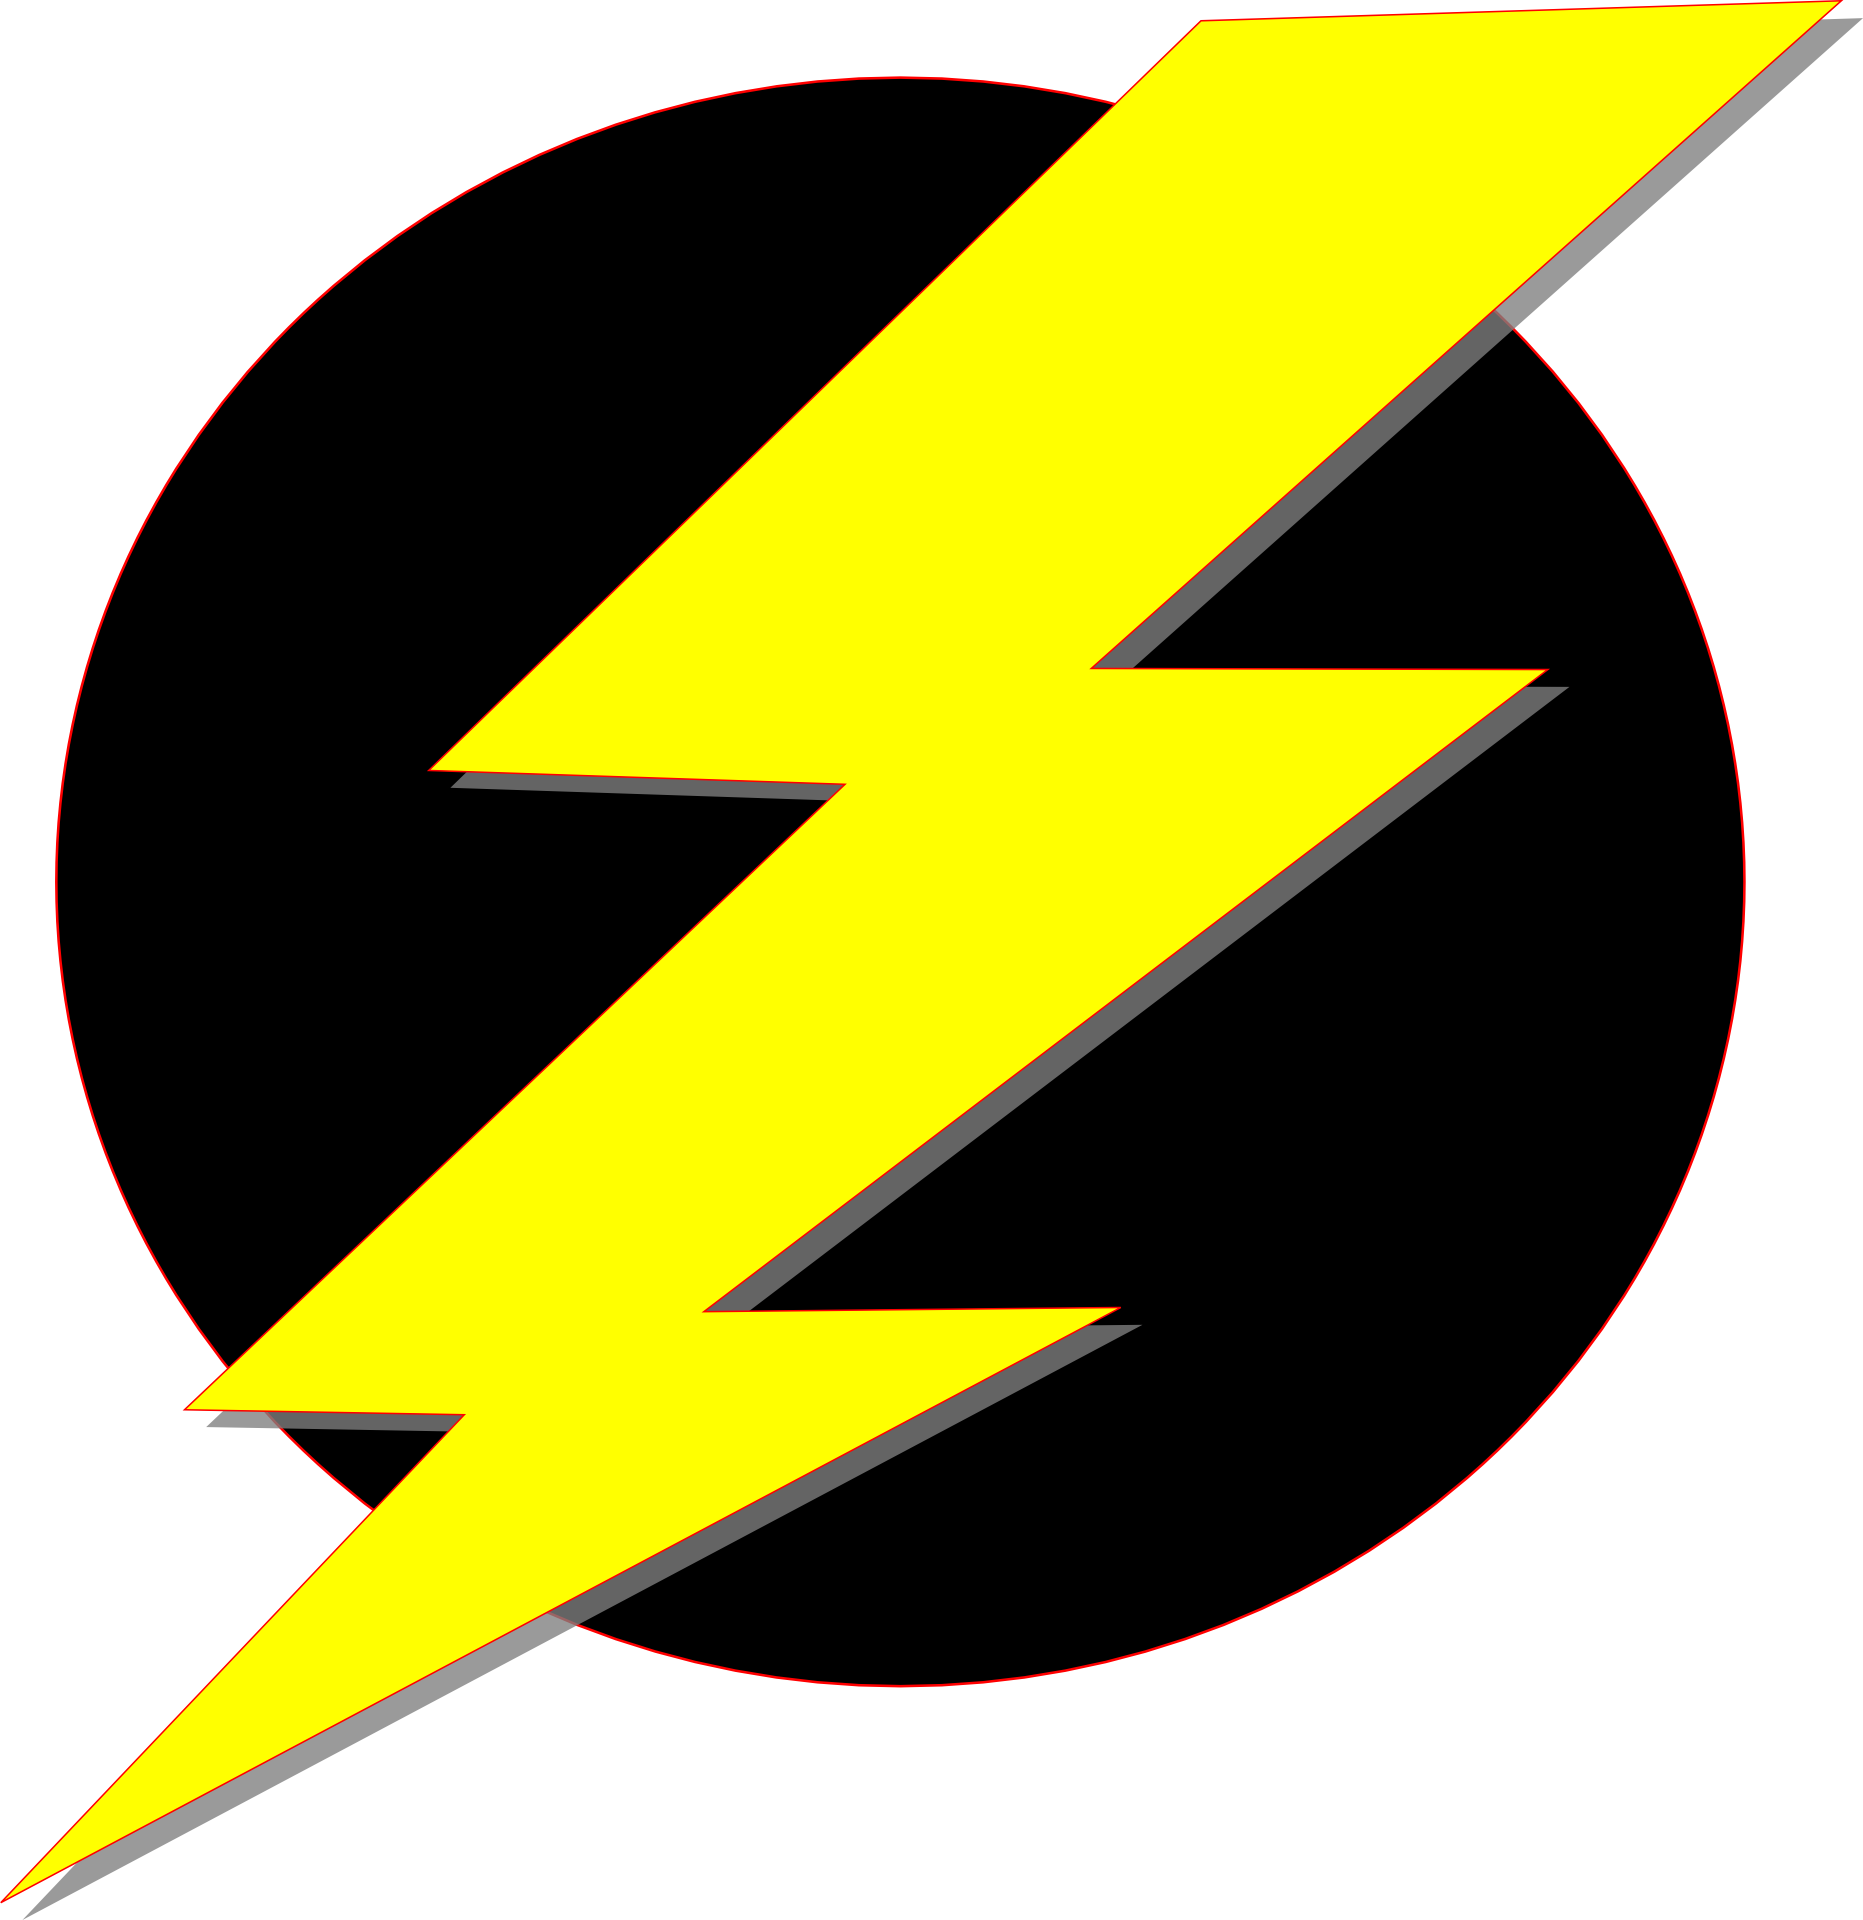 N free image. Electricity clipart lightning flash